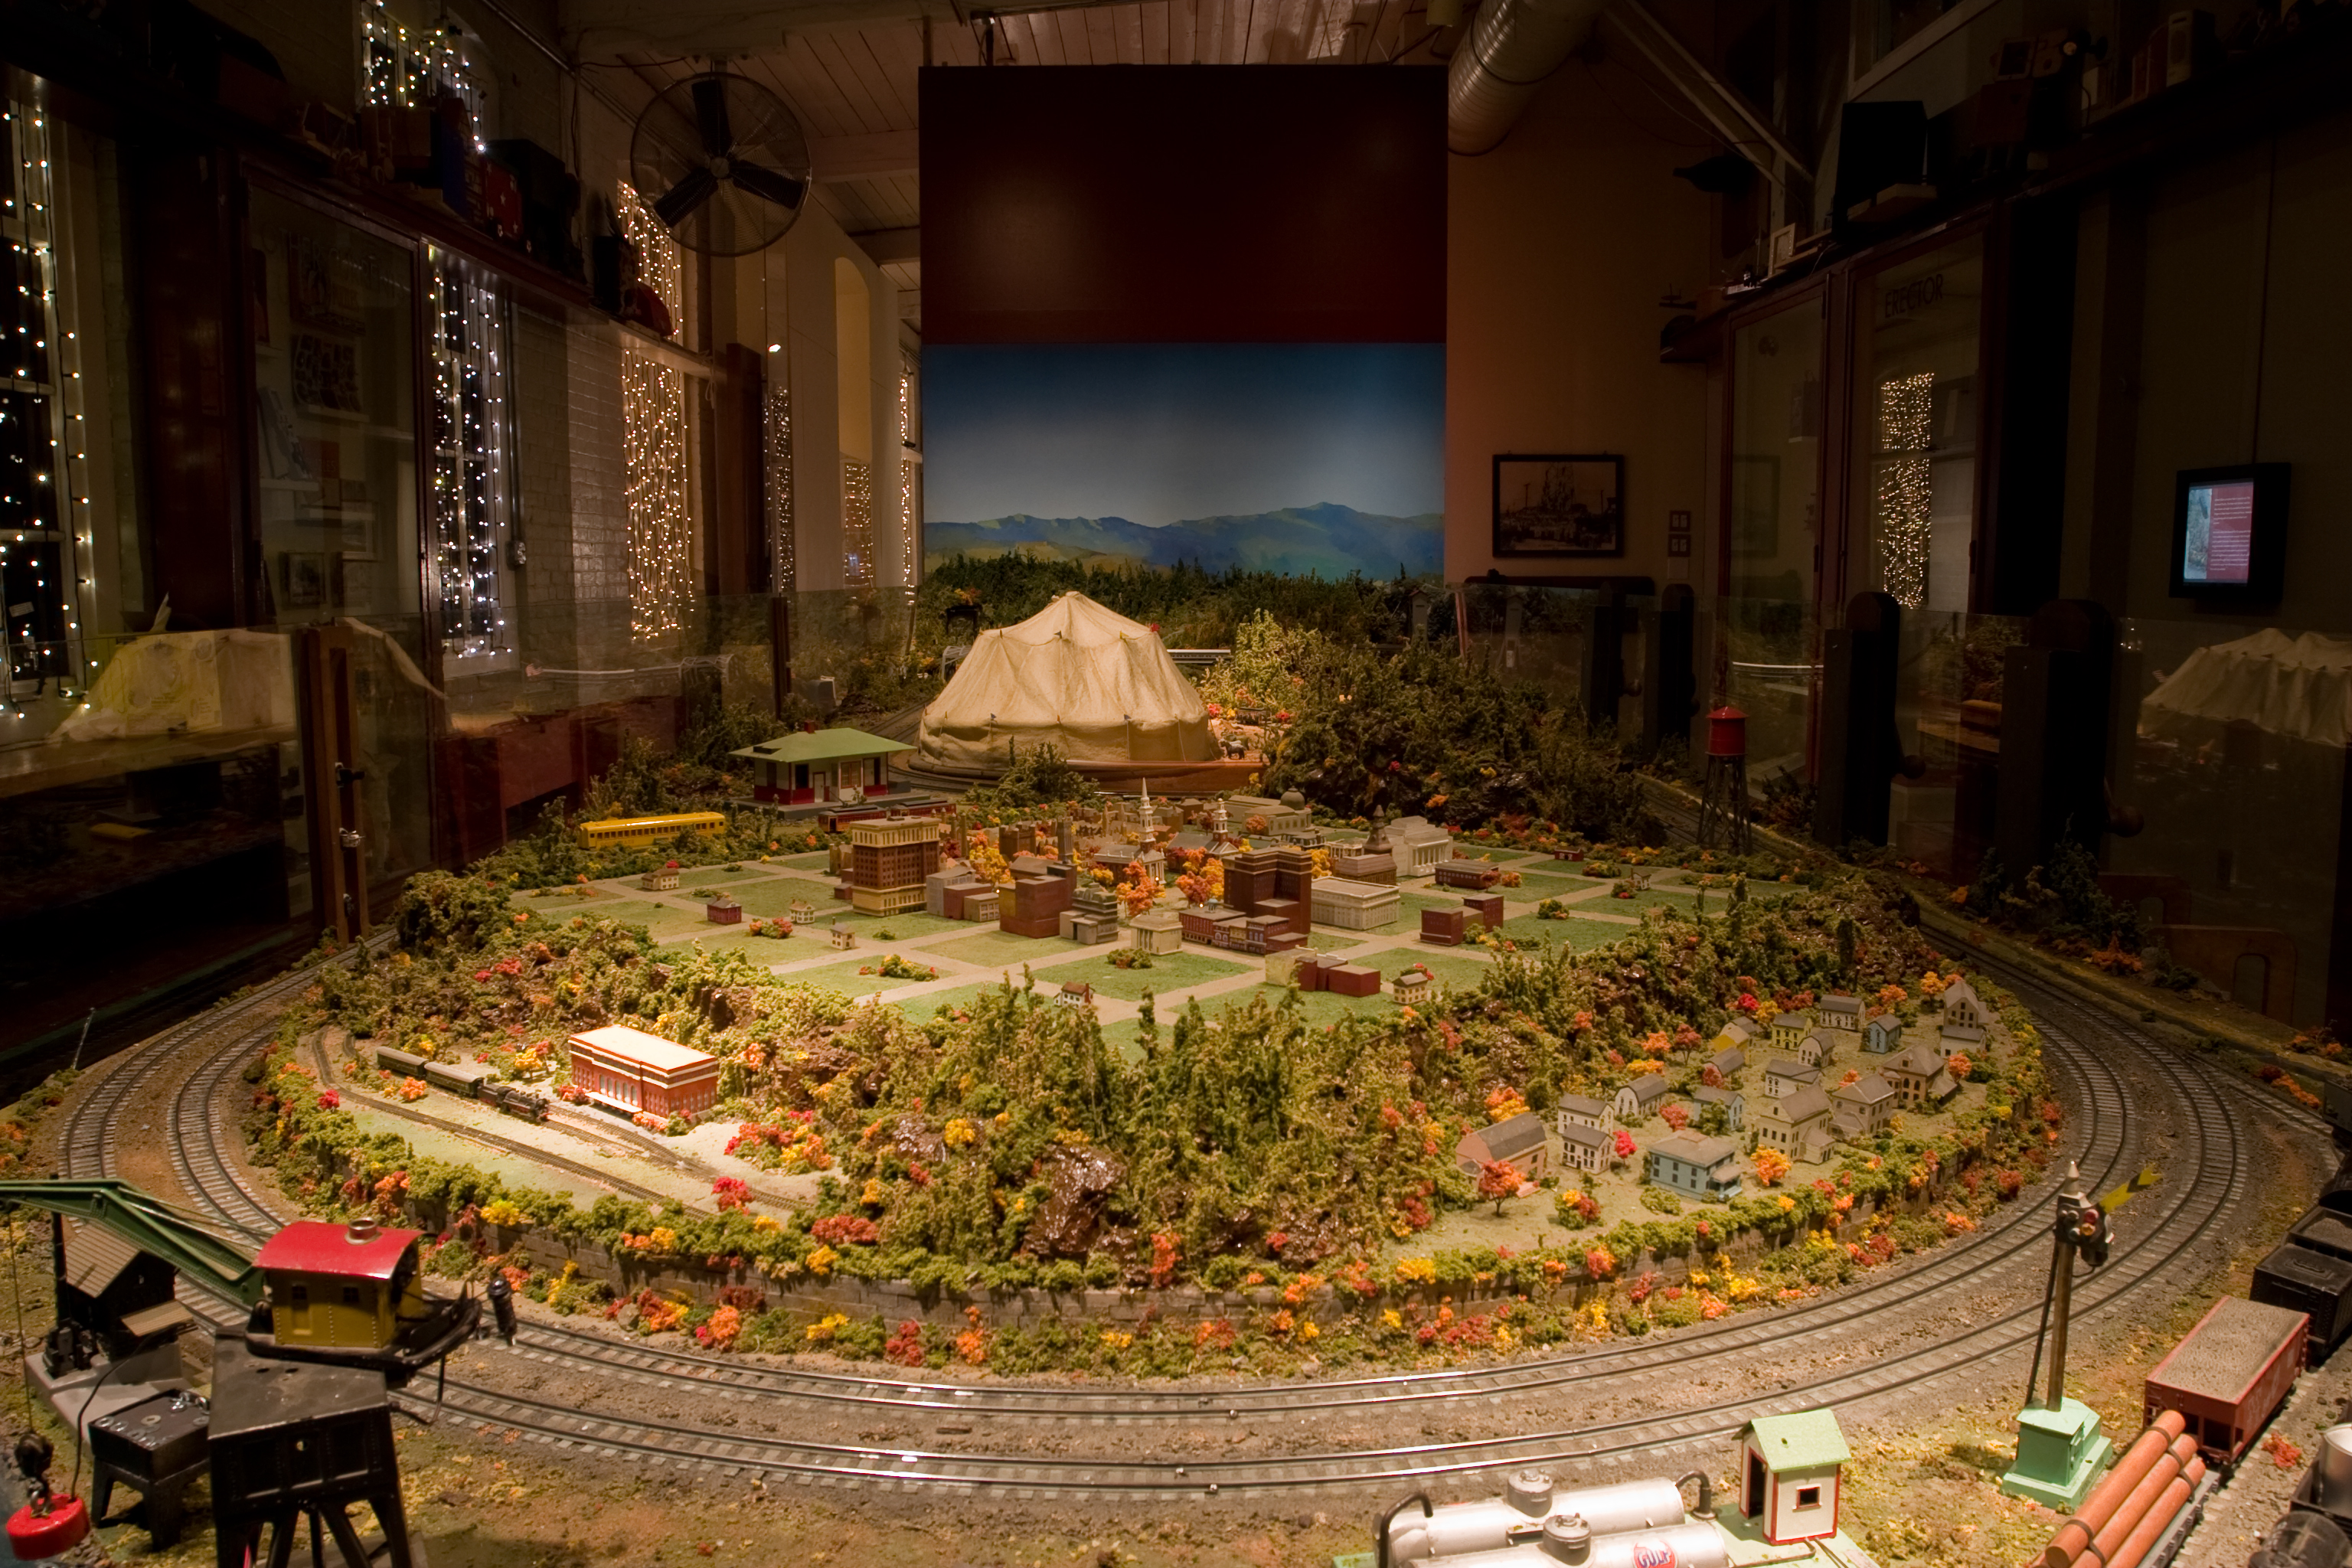 Model trains for hobby